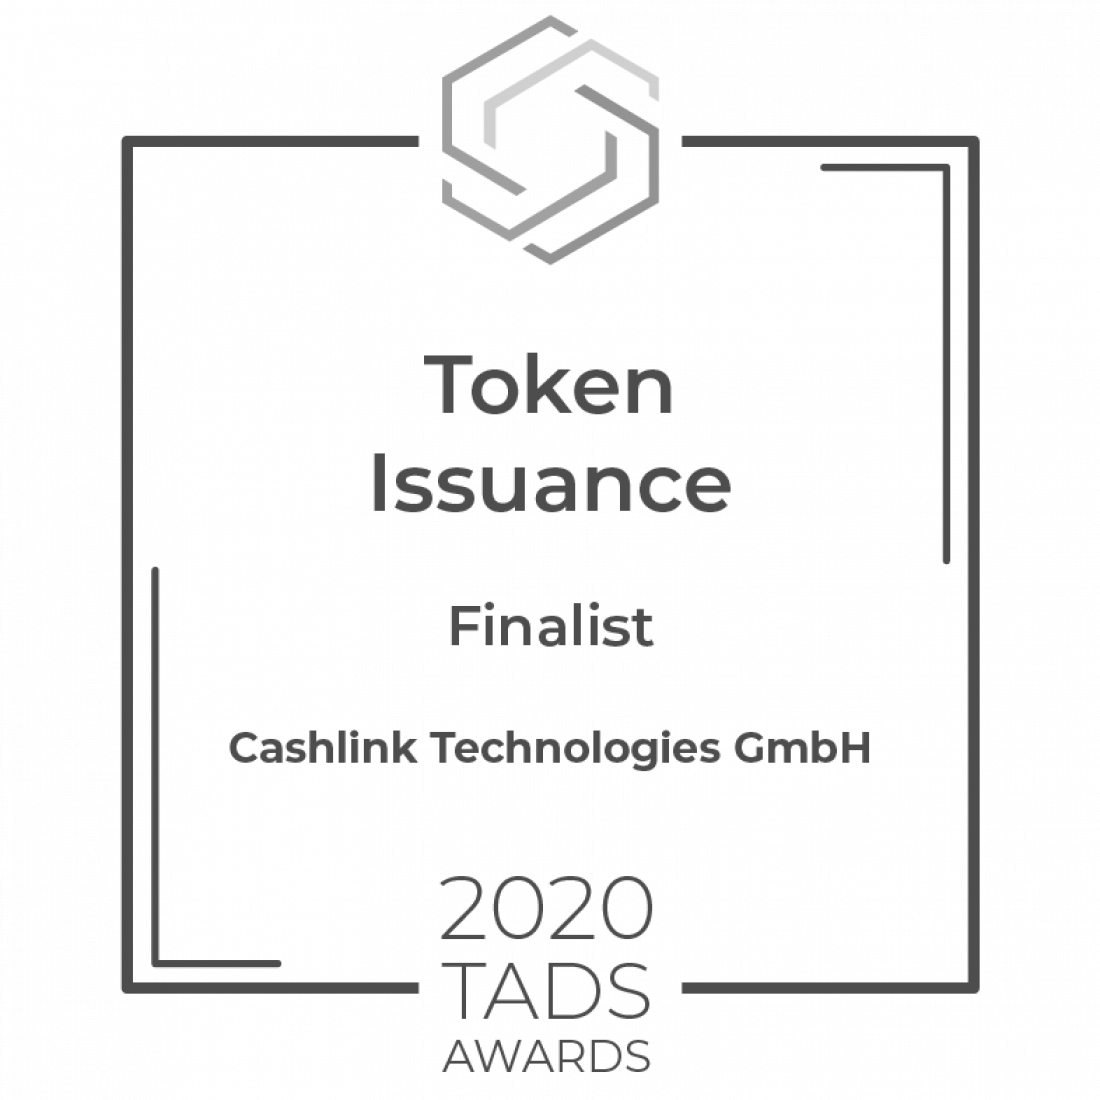 TADS Award Token Issuance Finalist Cashlink (2)